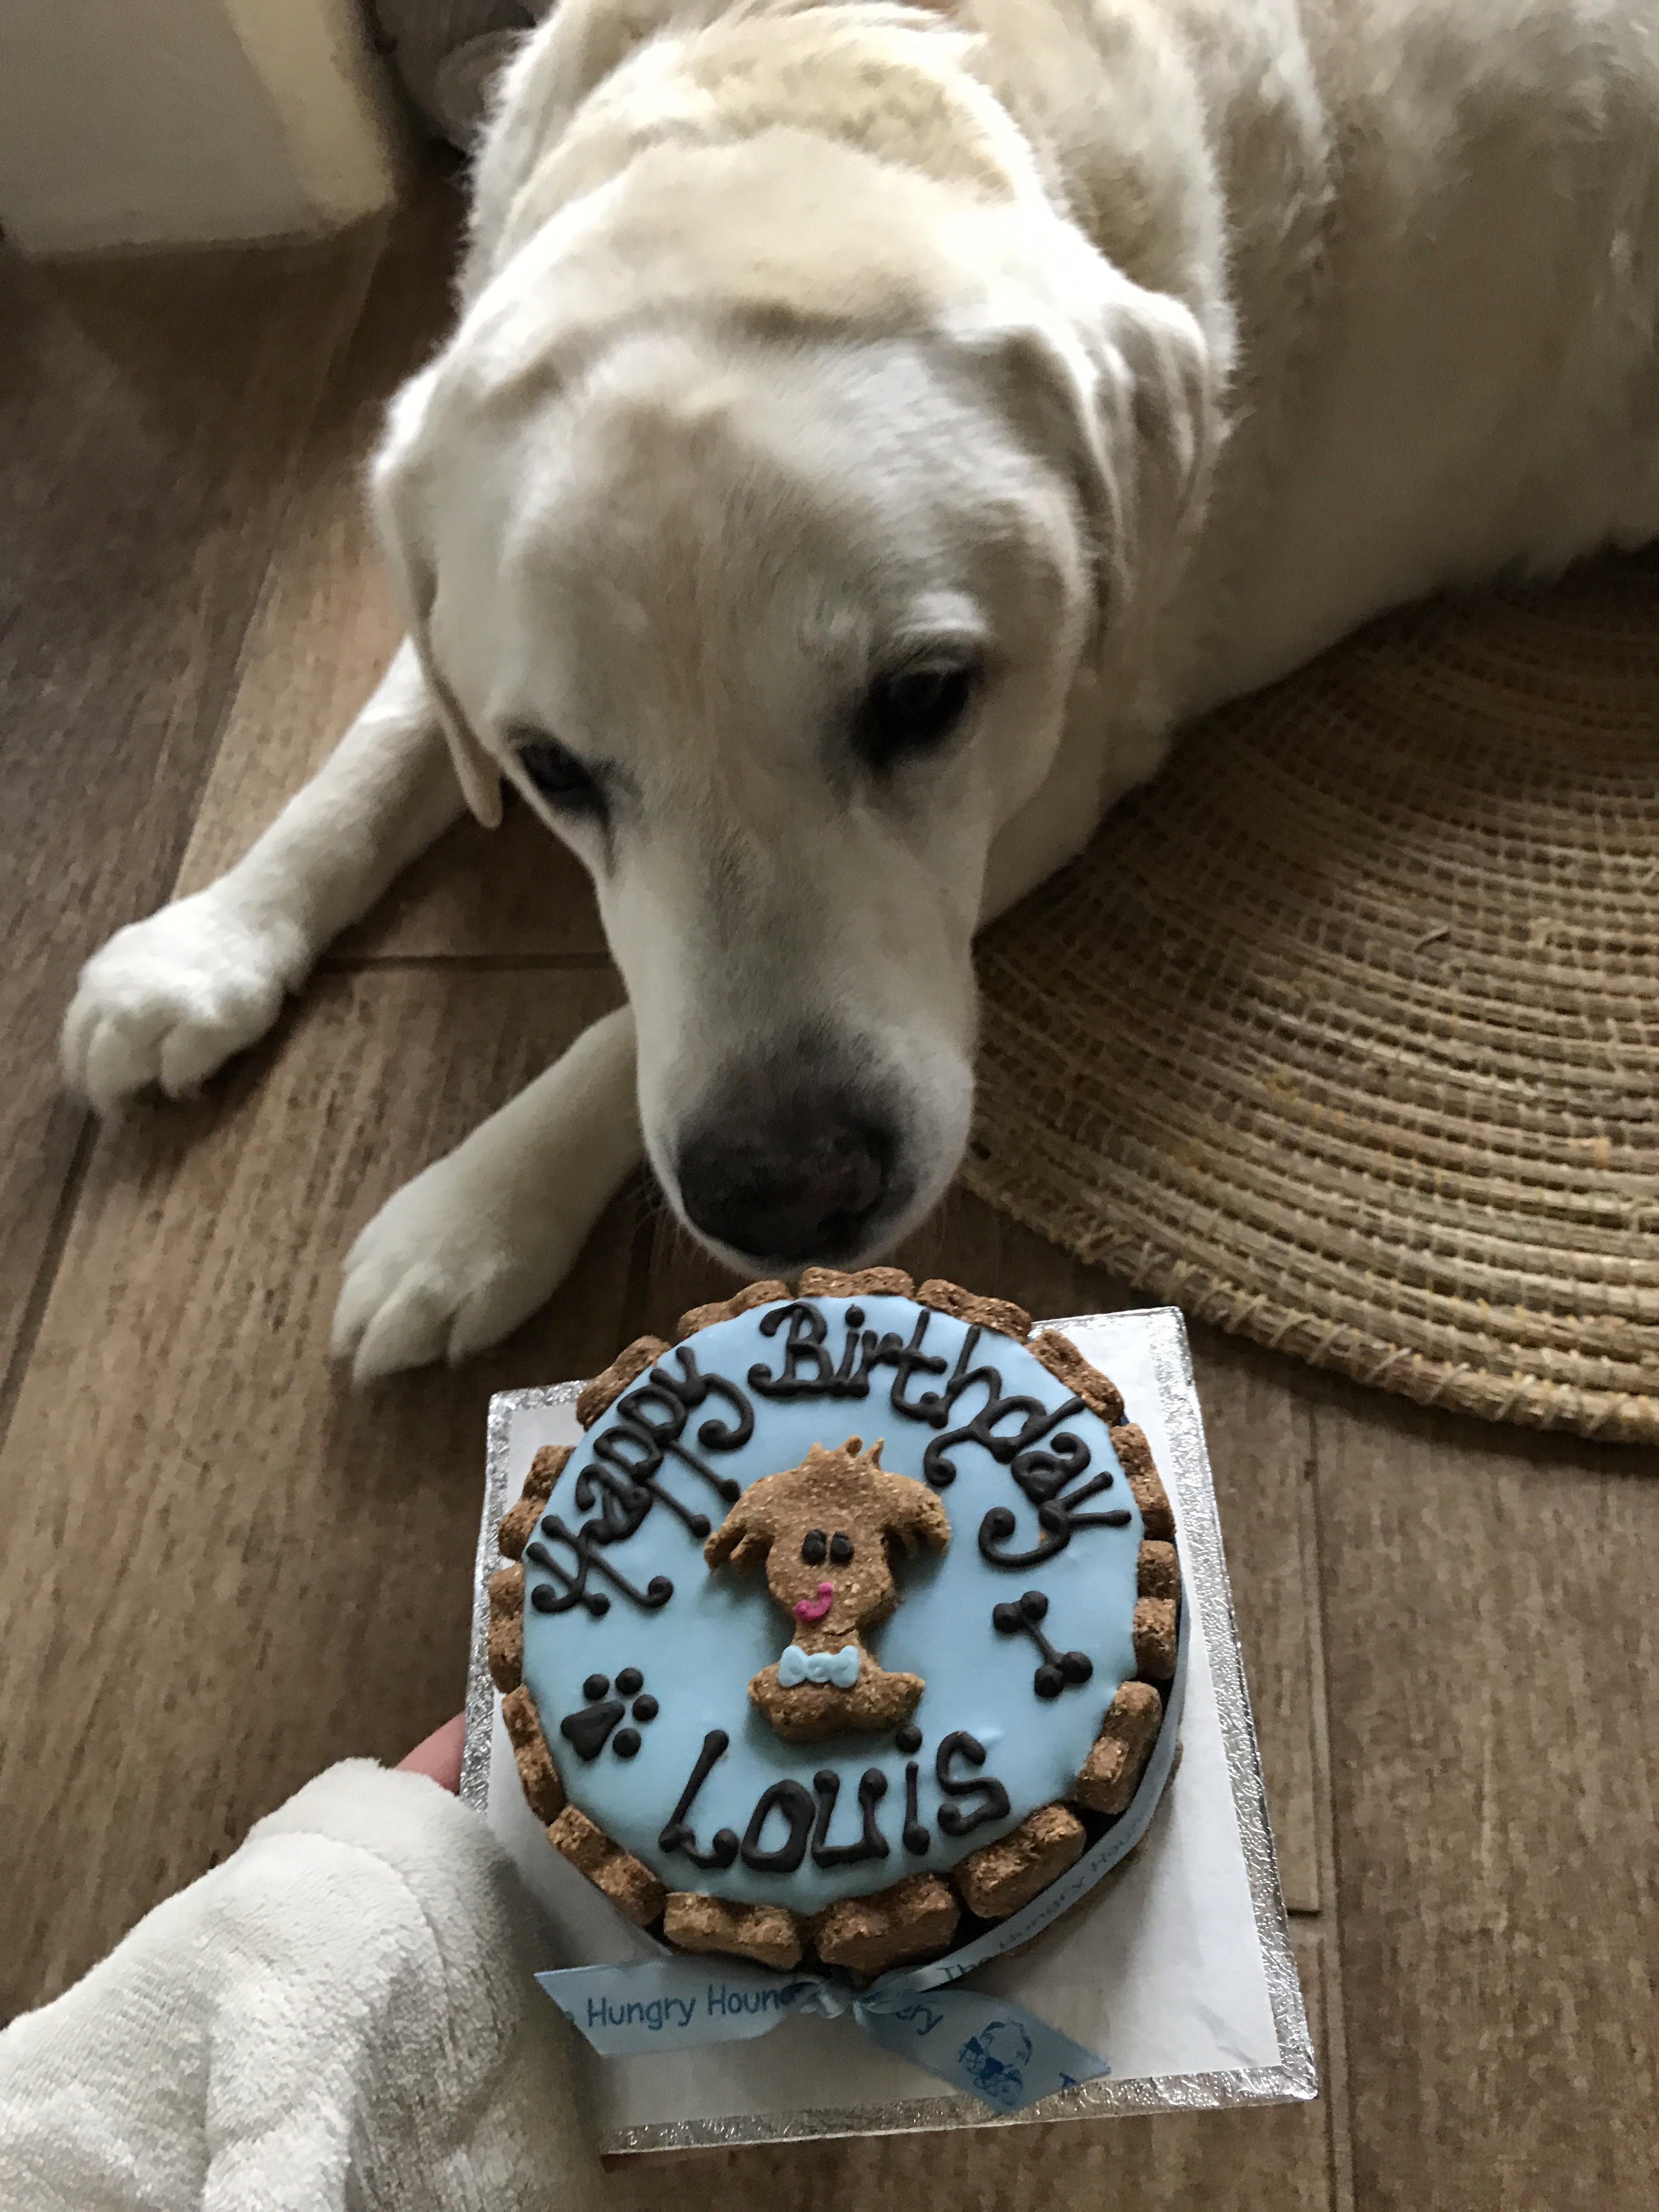 Louie loved his cake!